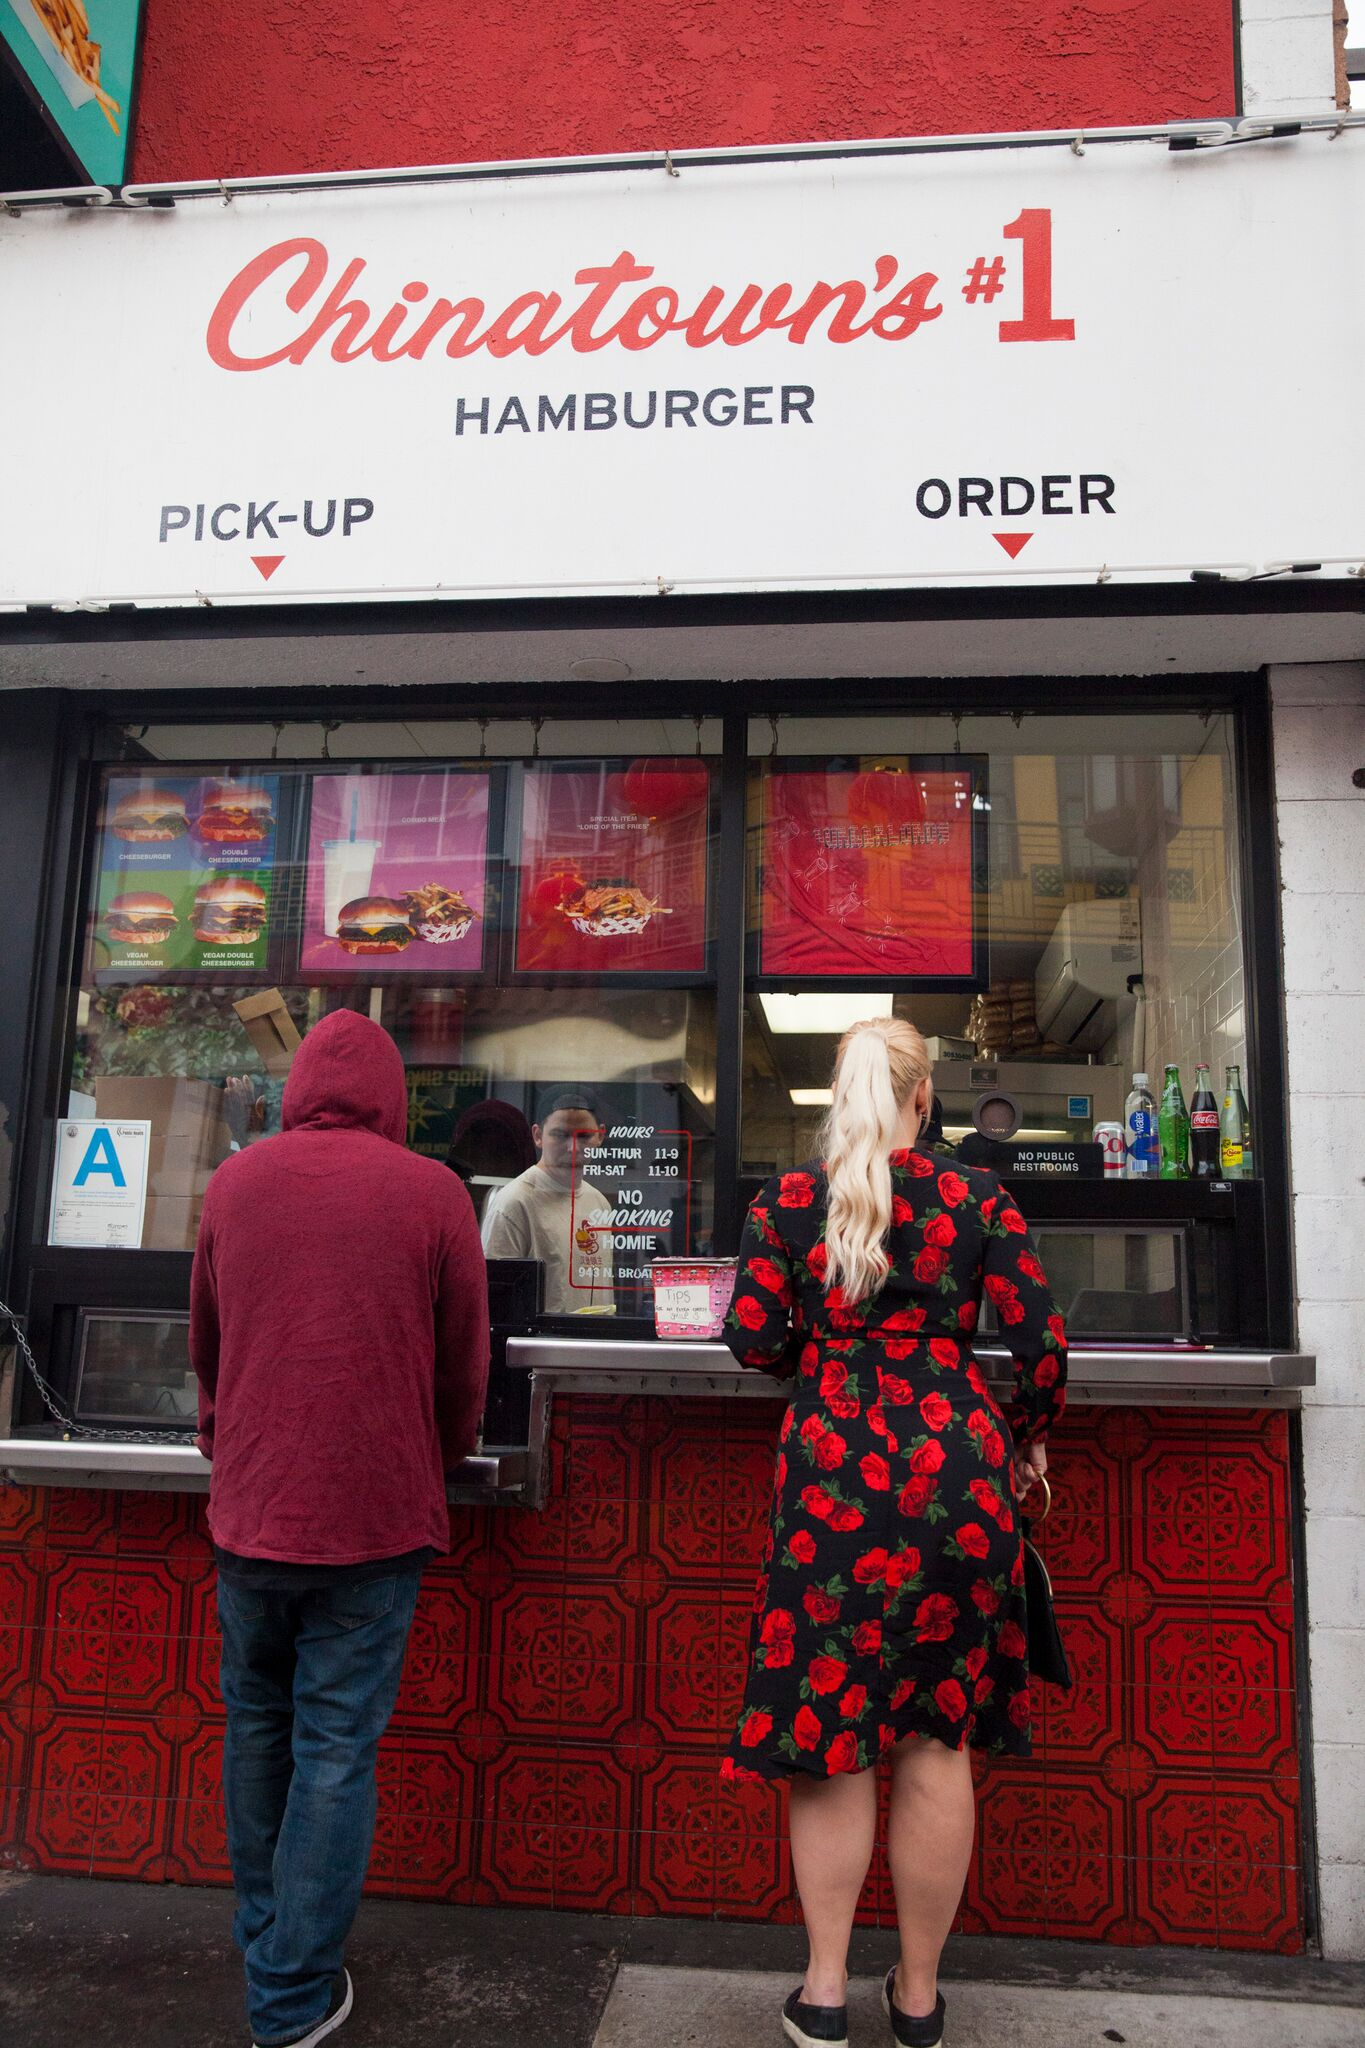 Order at their walk-up window... -